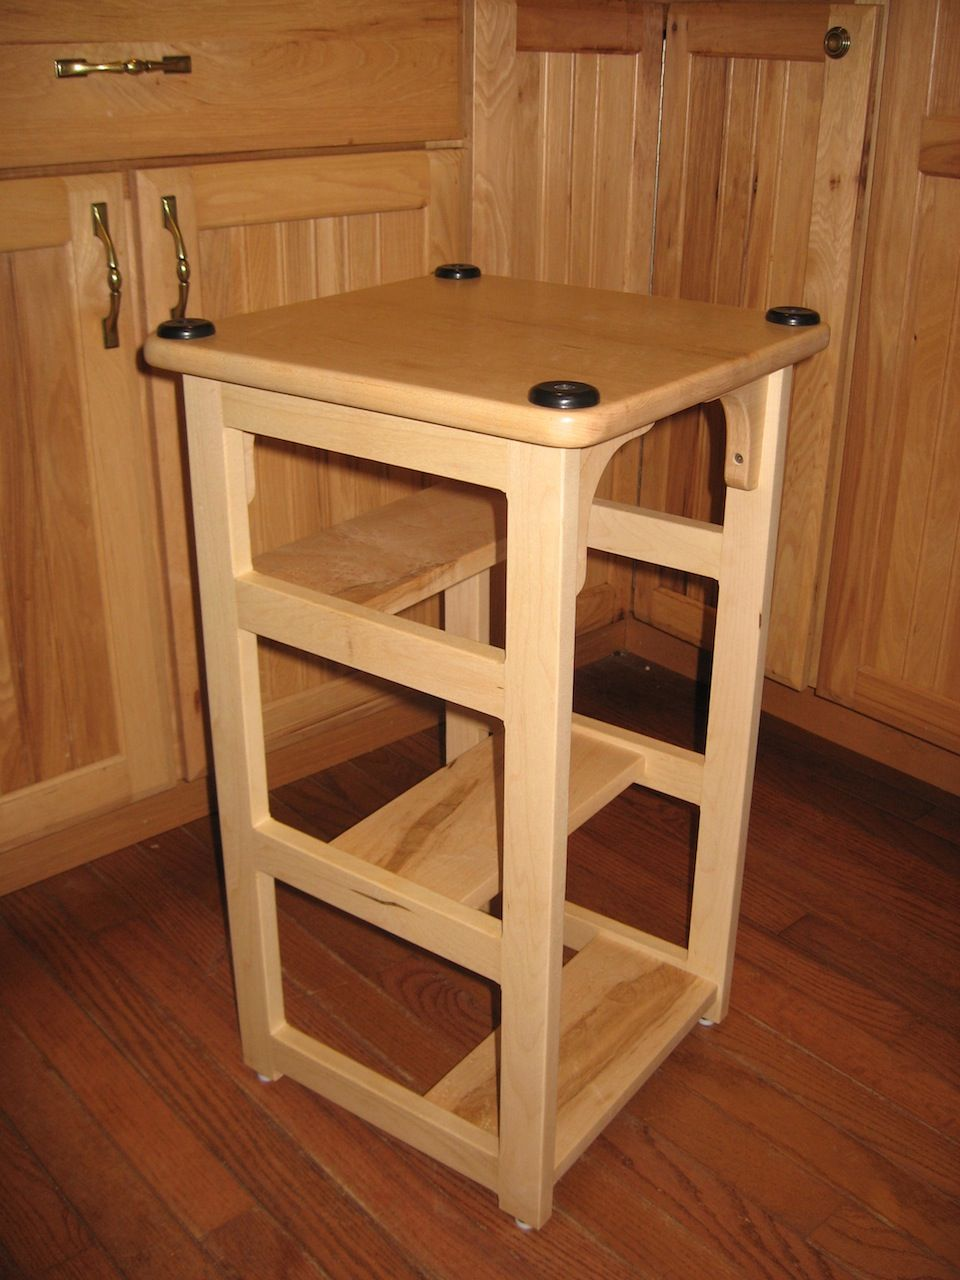 Entrancing Small Step Stools With Natural Wood Stool Seat Also Three Design Stool Step Multifunction from Kitchen Design - Ideas and Picture & Stanu0027s Hoosier Step Stool - The Wood Whisperer | furniture ideas ... islam-shia.org